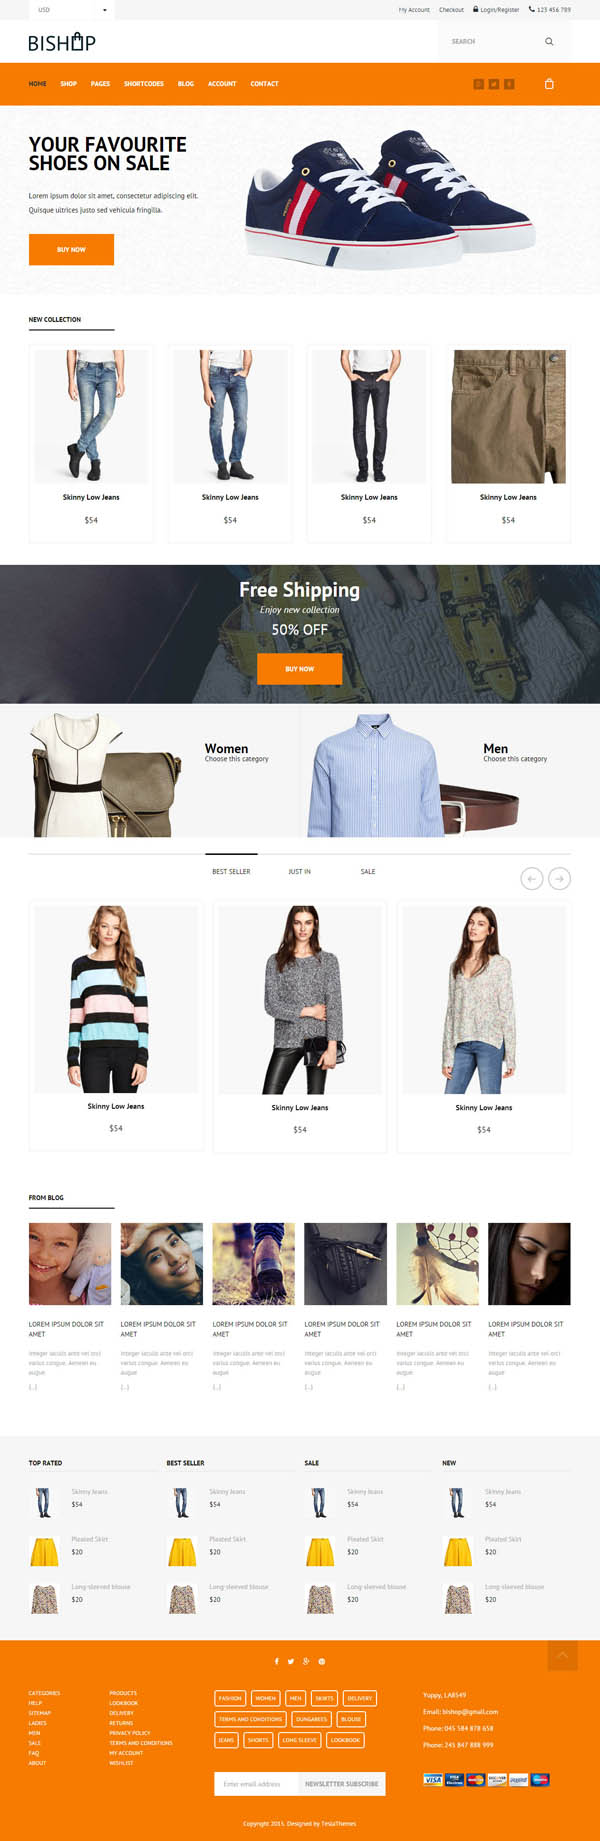 Bishop - Elegant & Clean Shop Theme